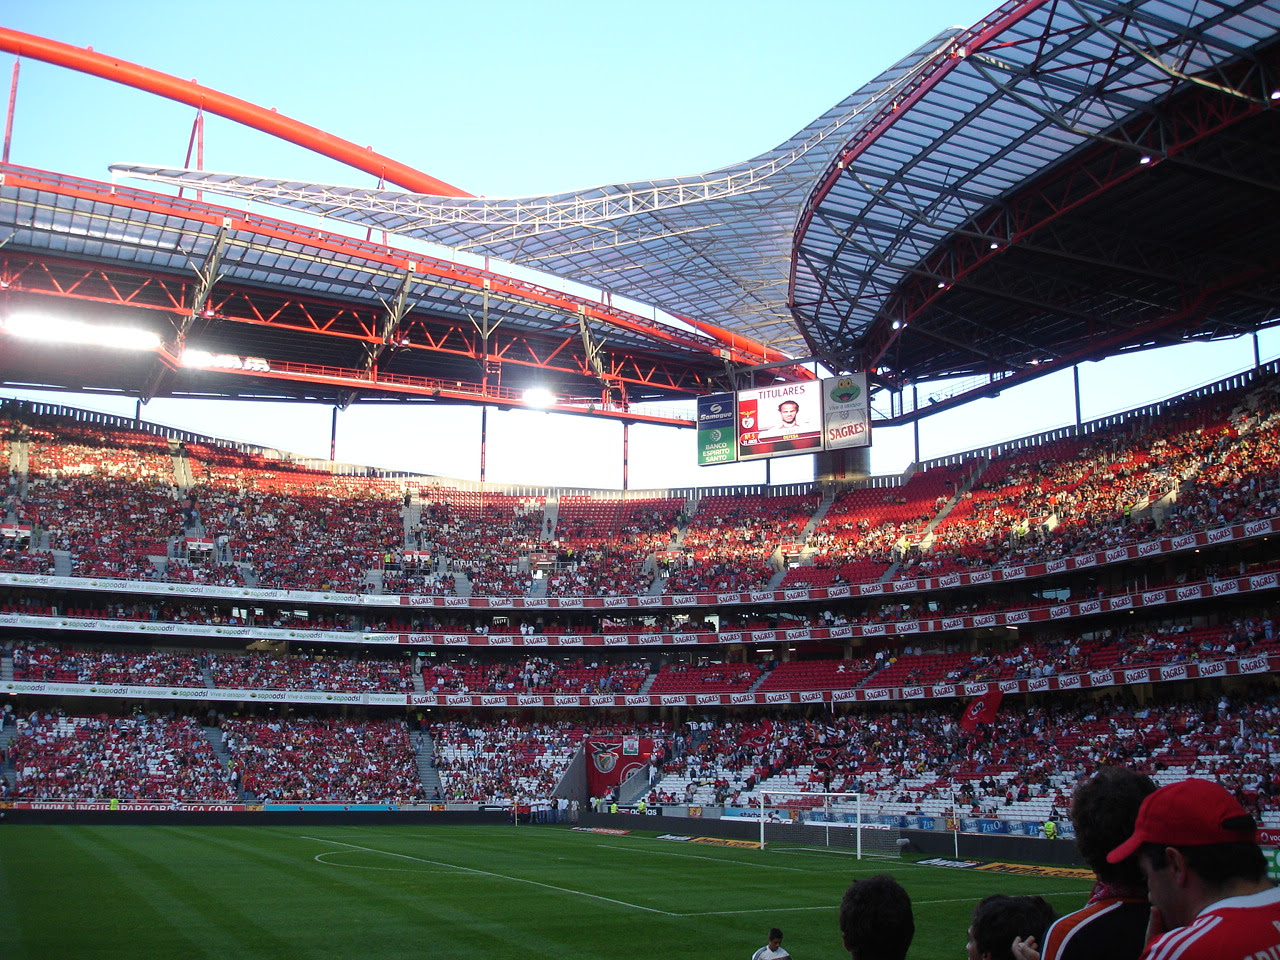 PORTUGAL - Stadium and Arena Development News - Page 21 - SkyscraperCity